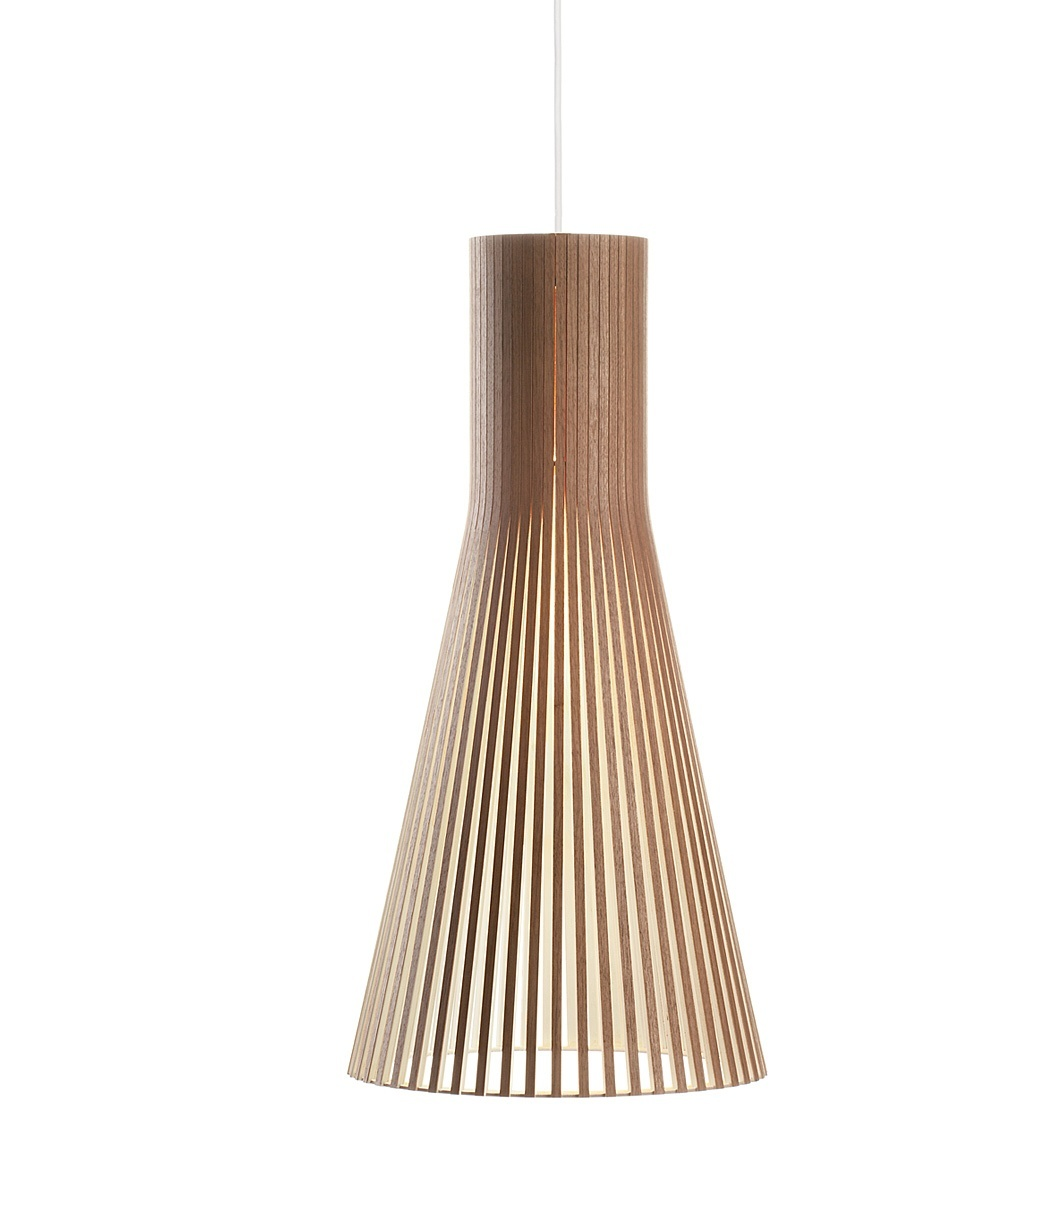 Secto Design Secto 4200 hanglamp-Walnoot